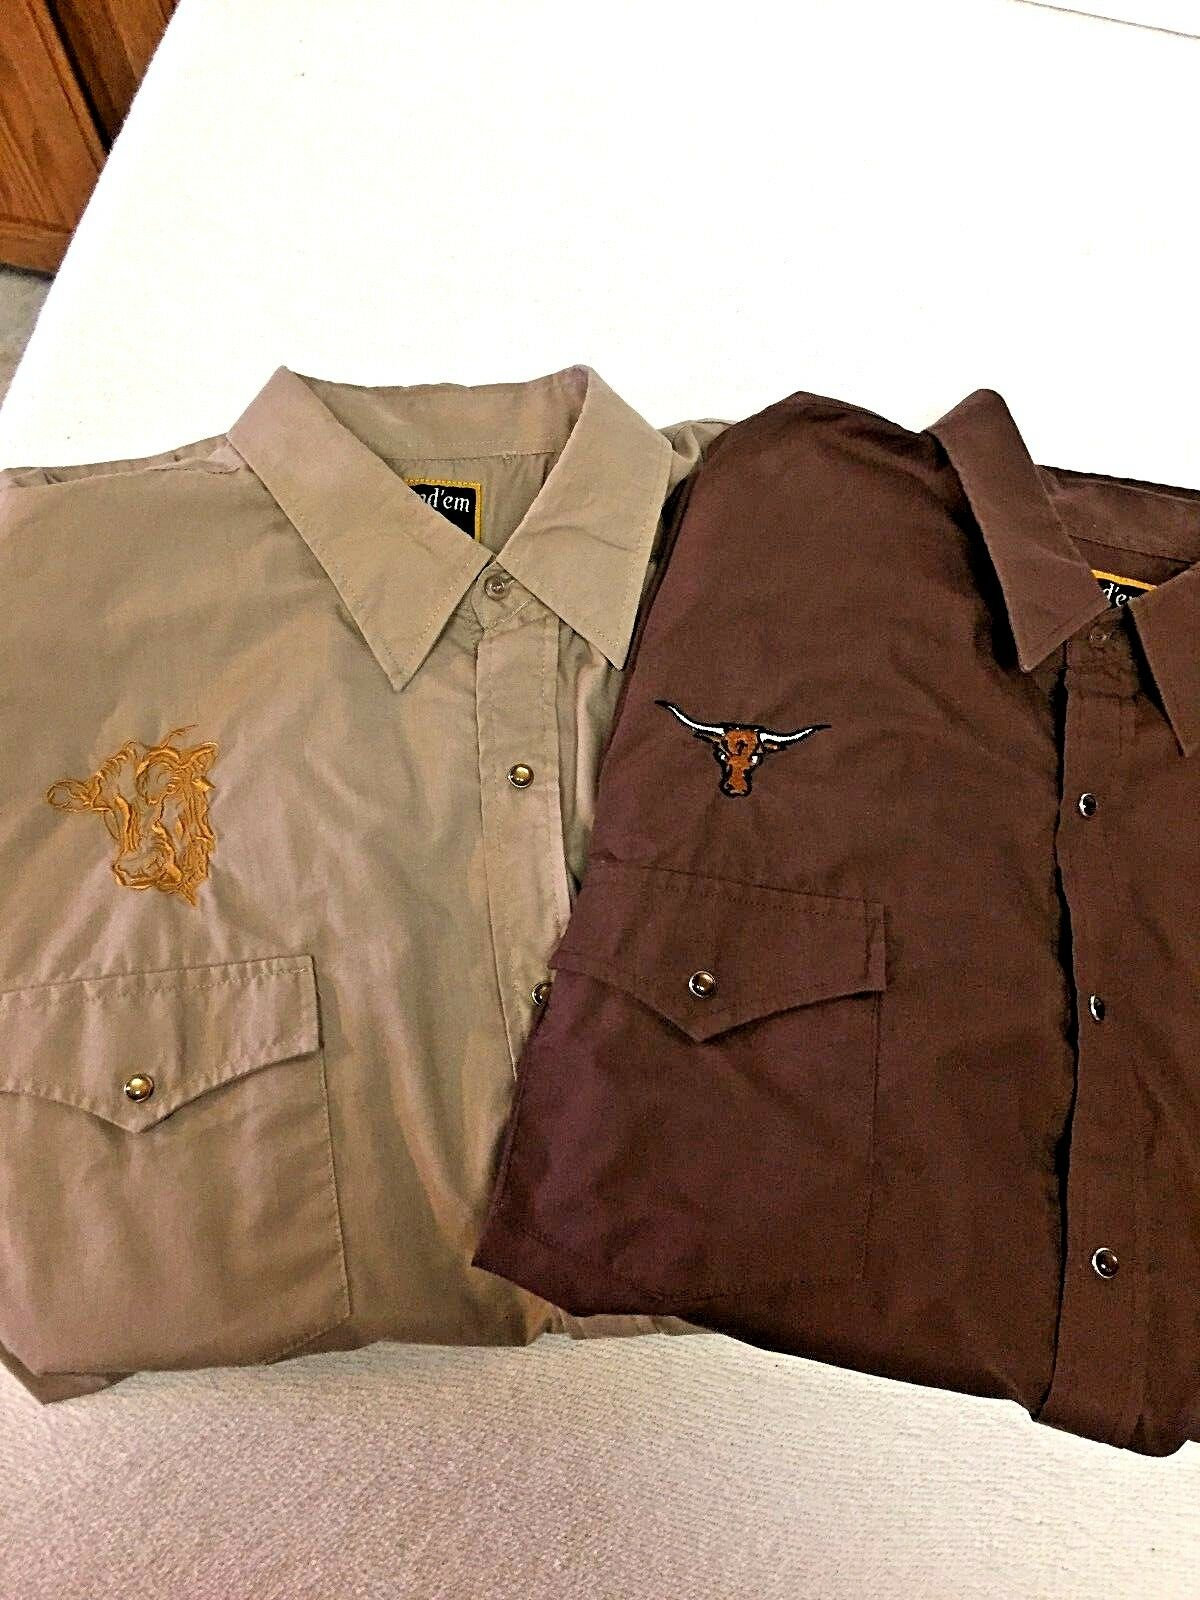 Round Em Western Gear Men's 2 Shirts Pearl Snaps Steers Men's size  L